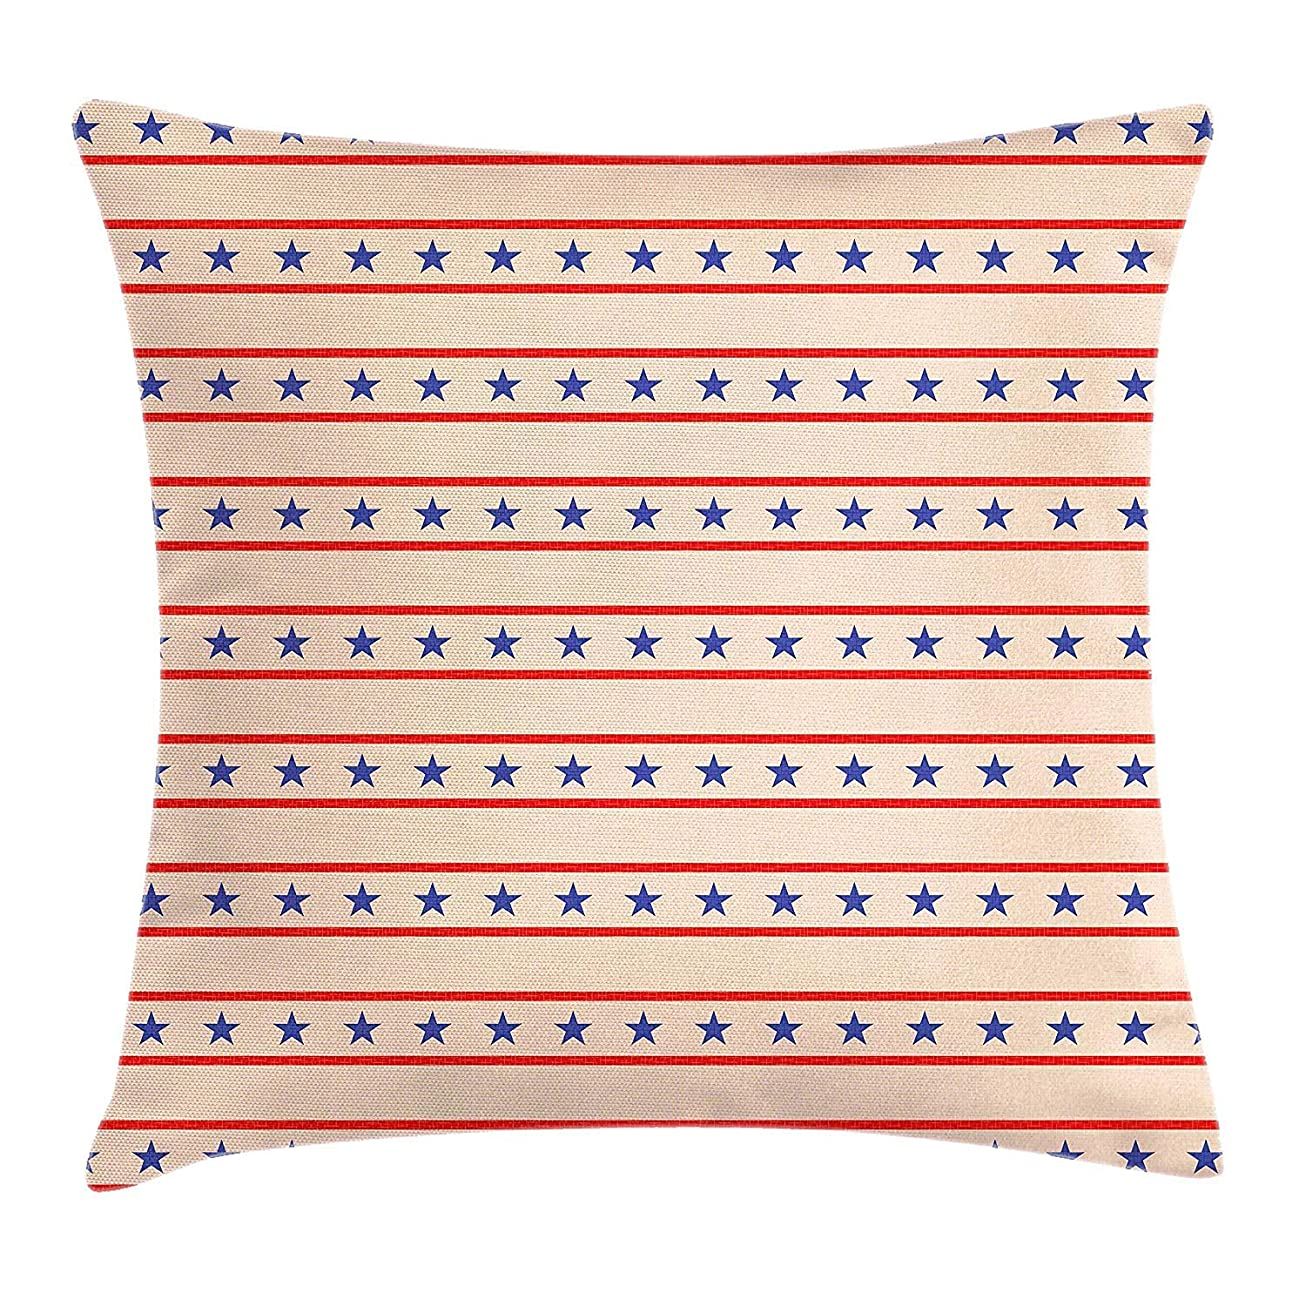 骨折ちょうつがい人Primitive Country Decor Throw Pillow Cushion Cover, Horizontal Borders Patriotic Stars Nostalgic USA Pattern, Decorative Square Accent Pillow Case,Cream Navy Blue Red Size:18 X 18 Inches/45cm x 45cm